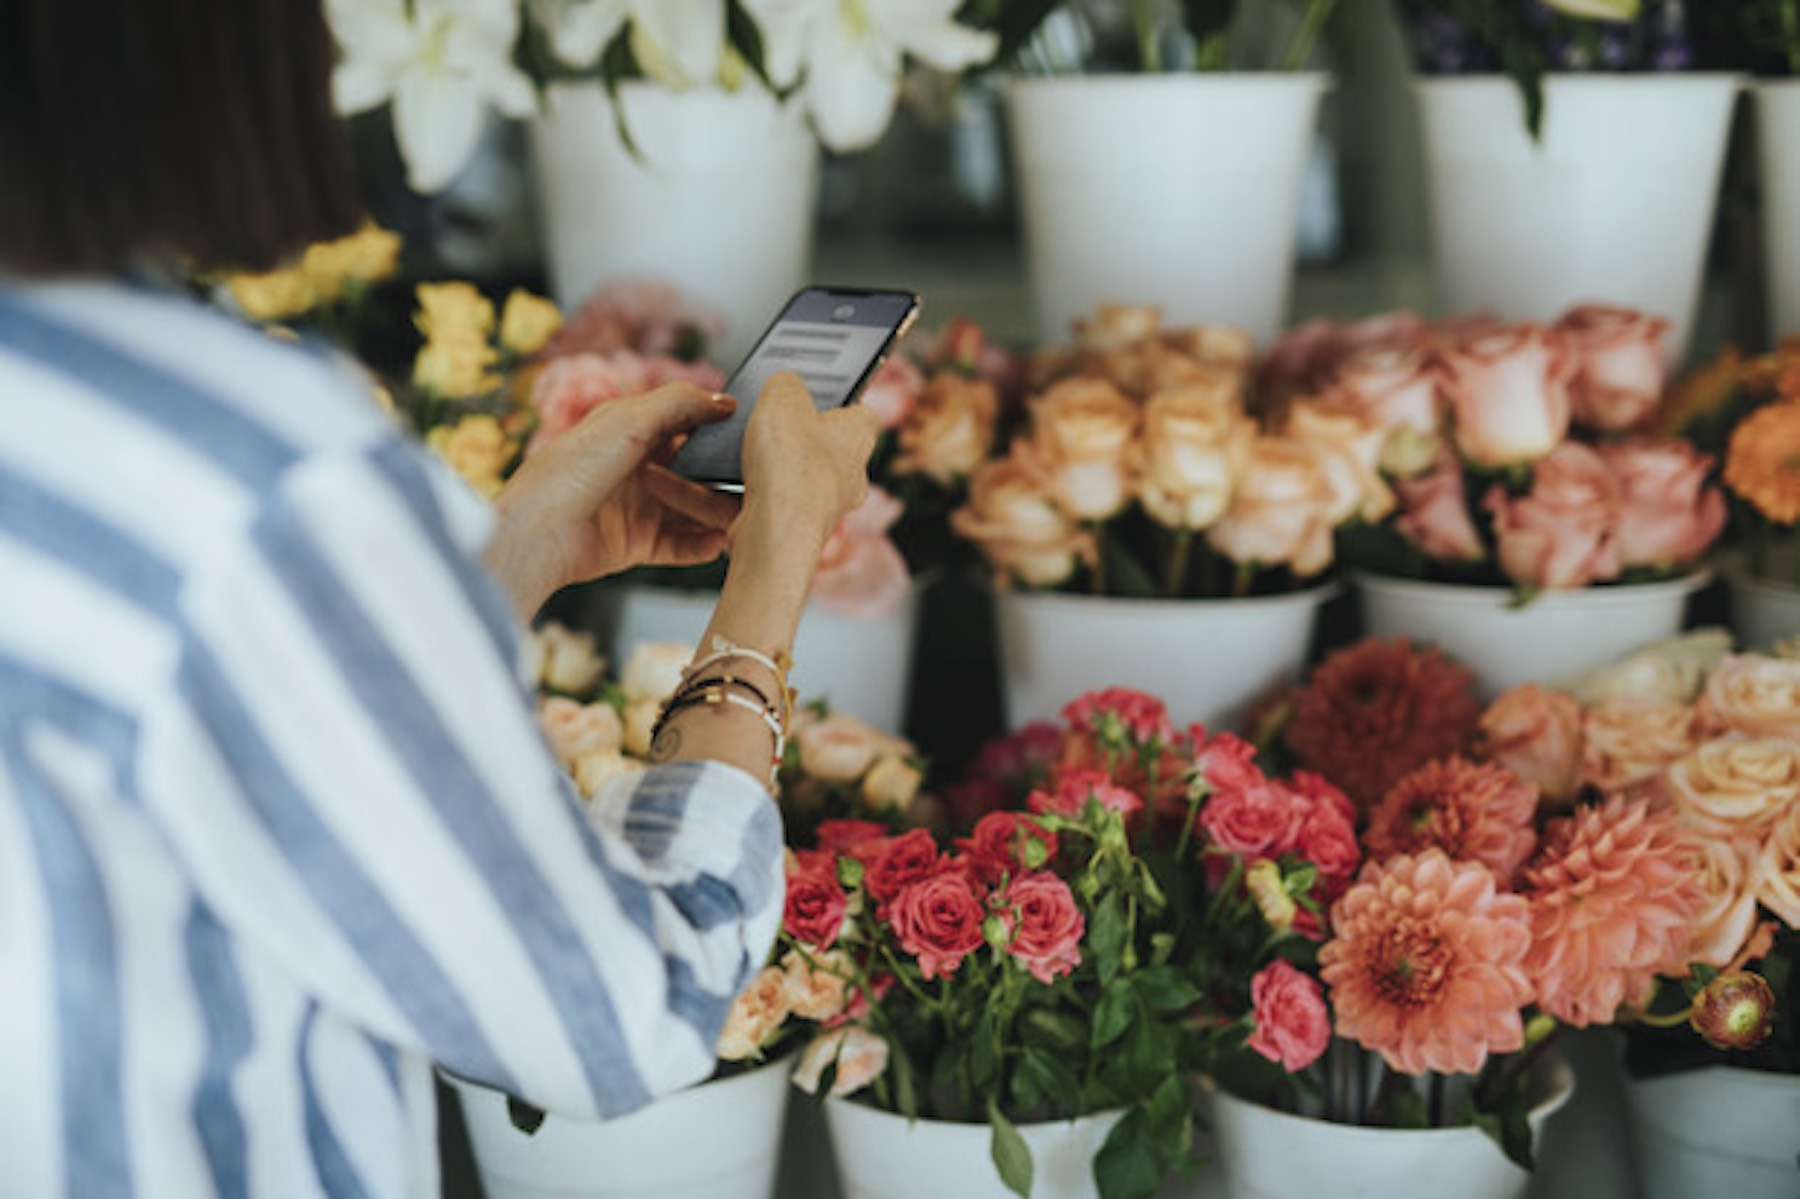 Tips to find the best flower delivery service